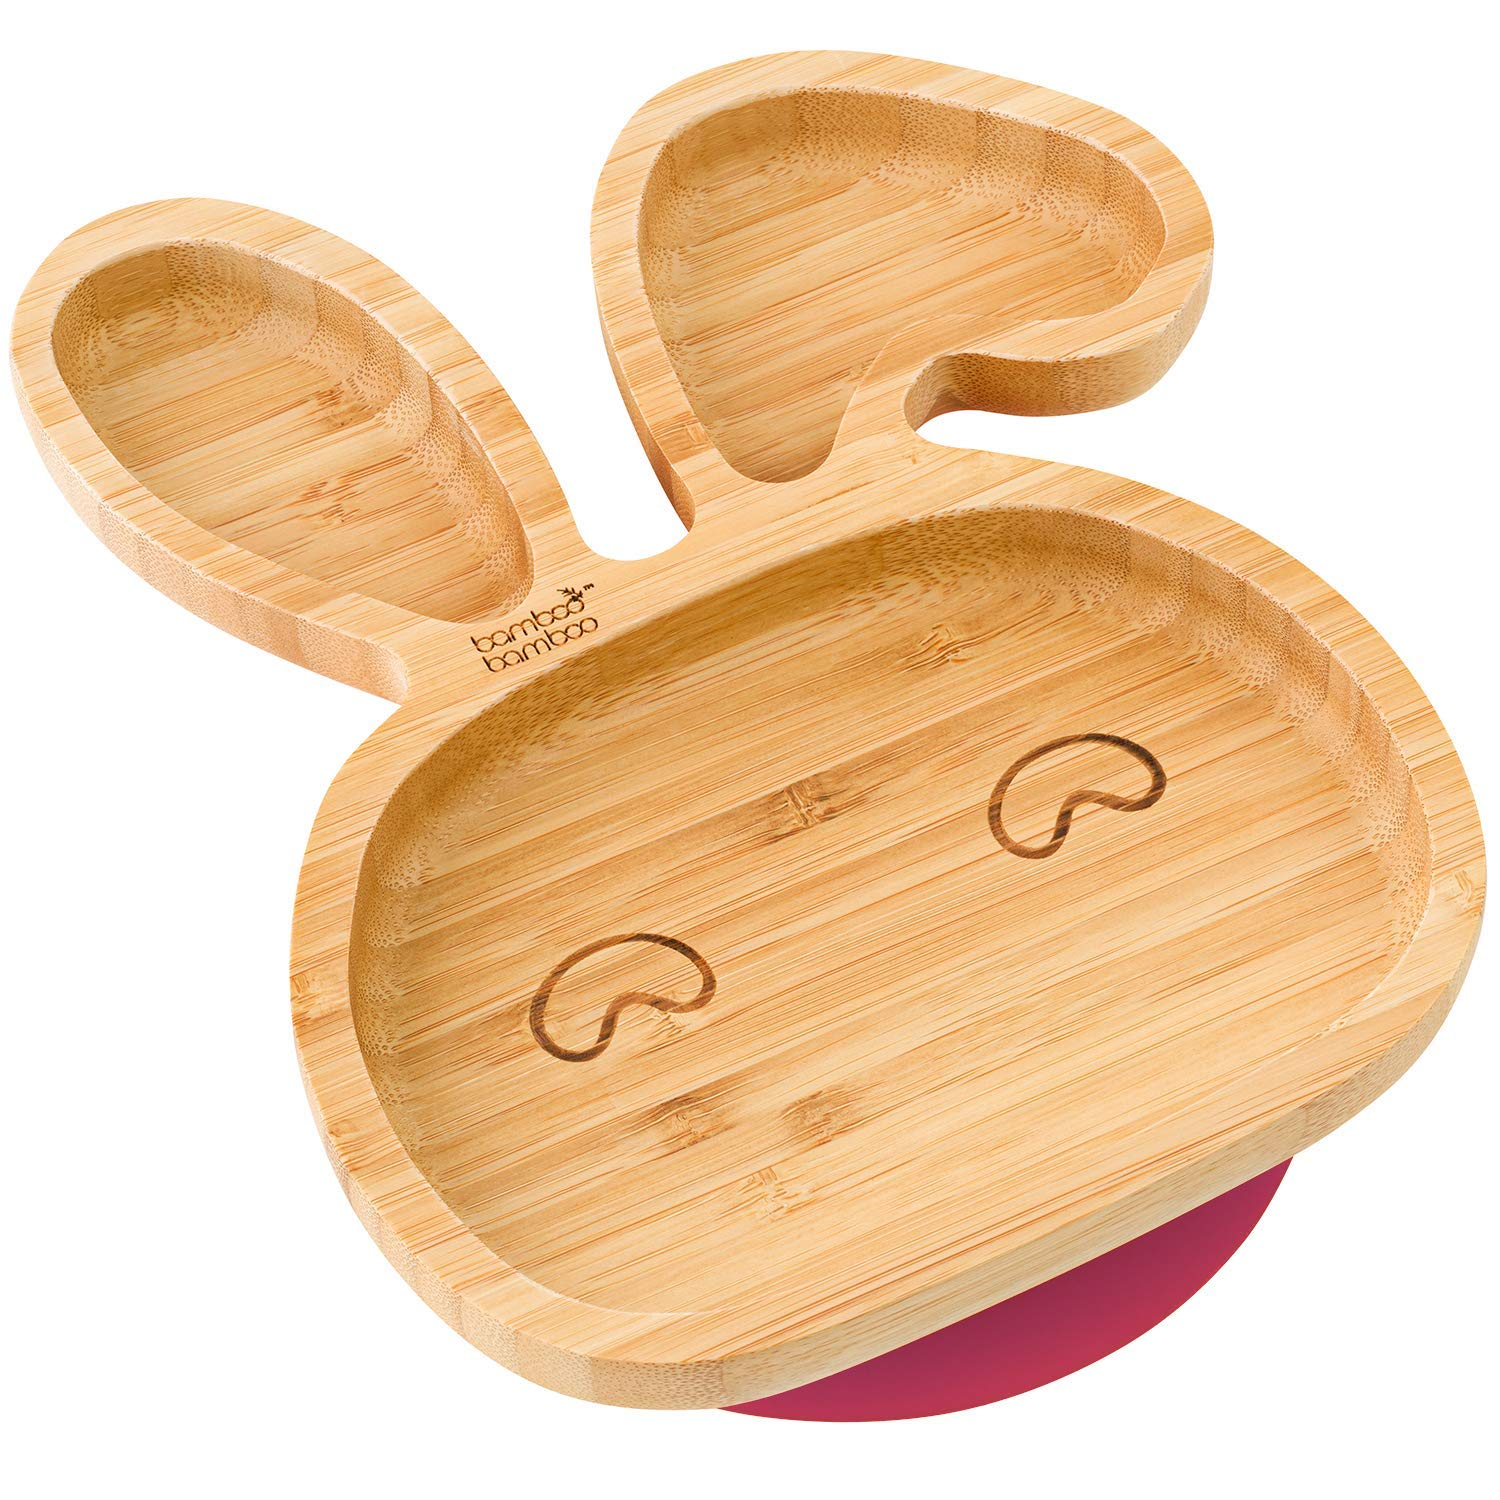 bamboo bamboo® Baby Toddler Bunny Cub Suction Plate, Stay Put Feeding Natural (Cherry)